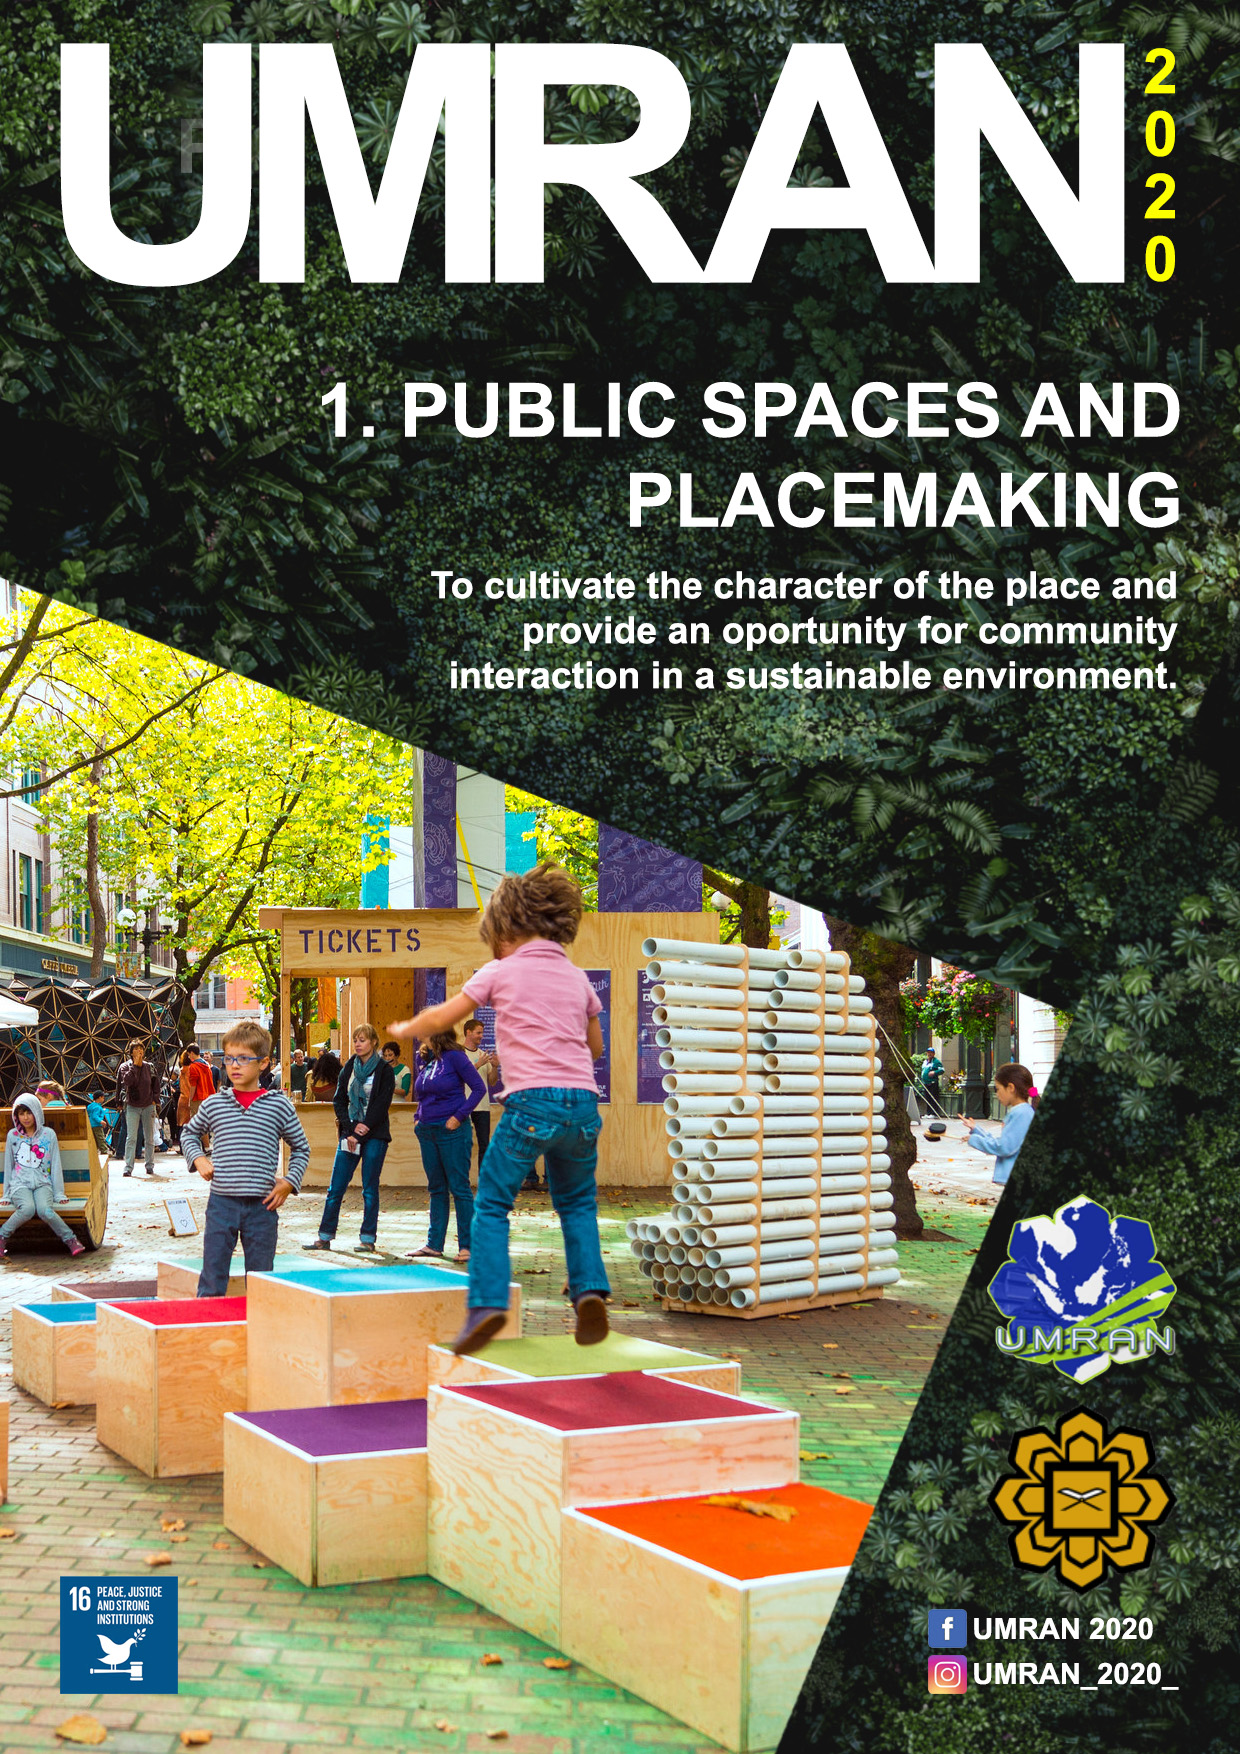 UMRAN 2020: Public Spaces and Placemaking